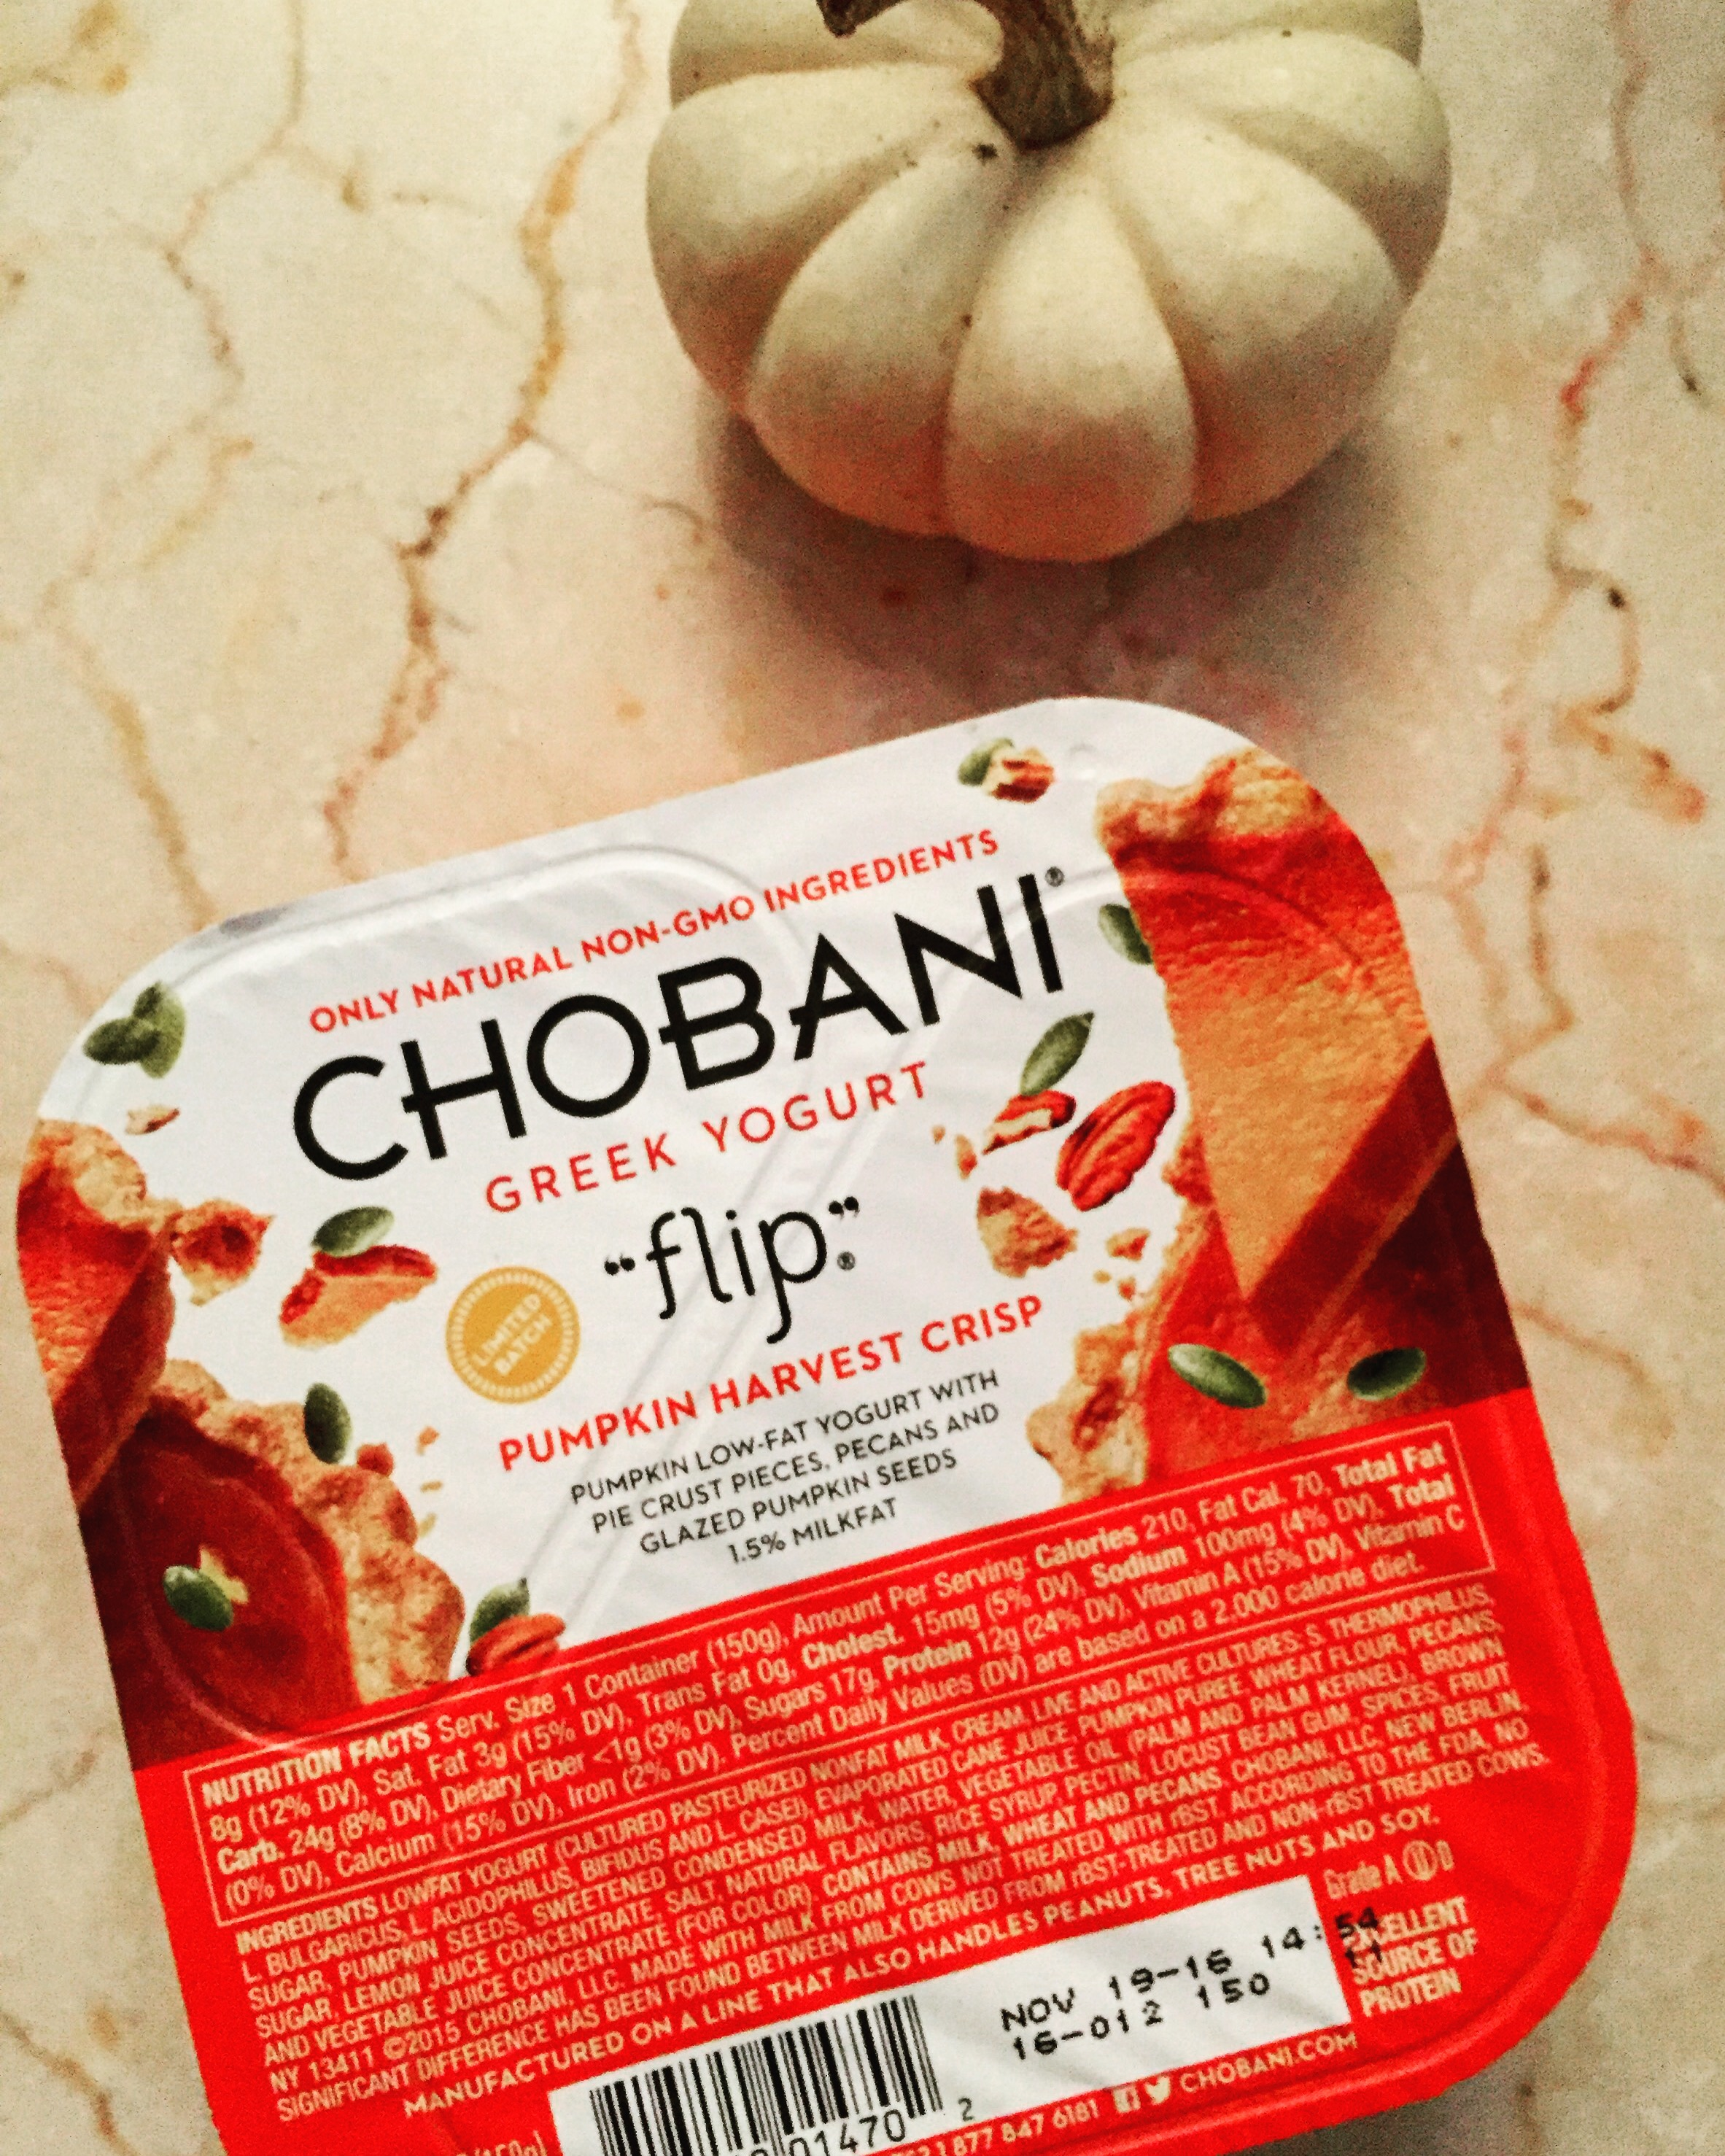 Chobani pumpkin yogurt